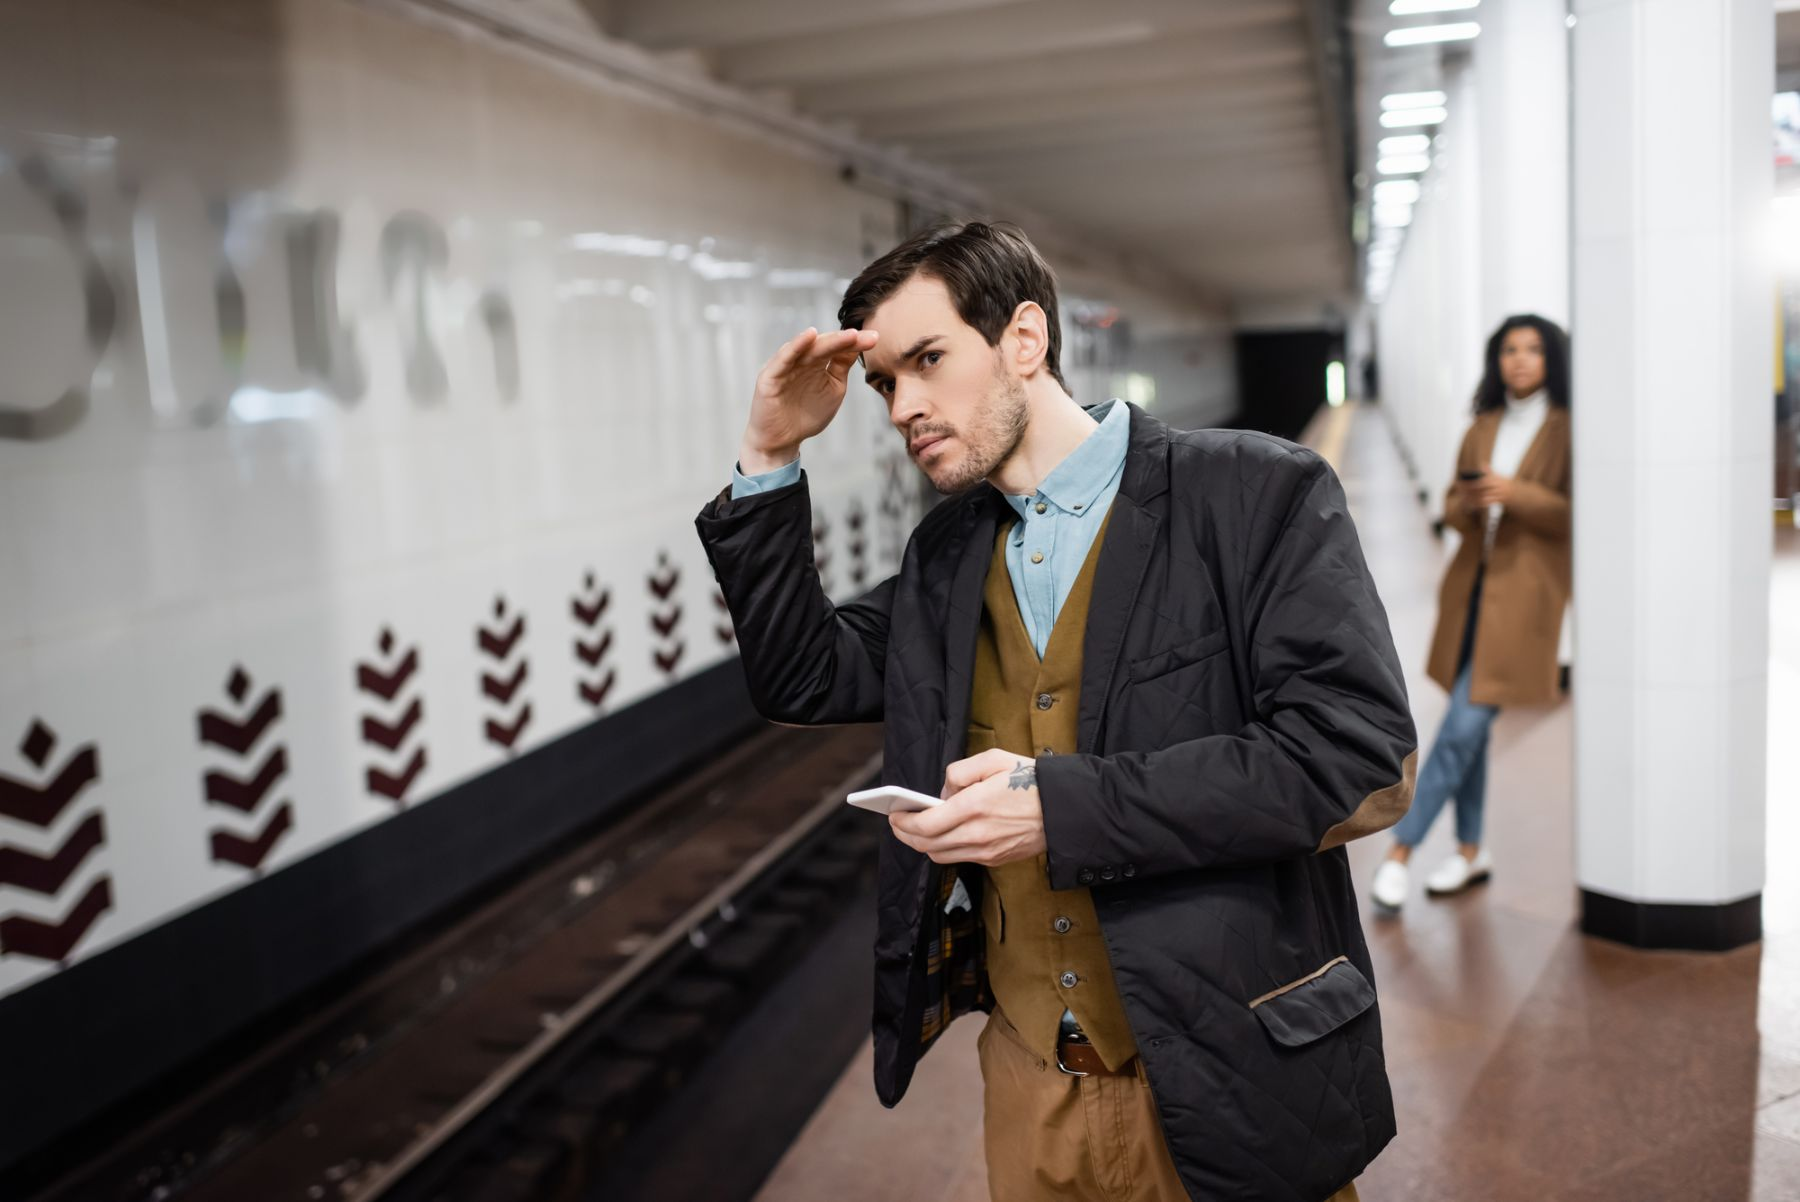 Man holding a phone watching for a train